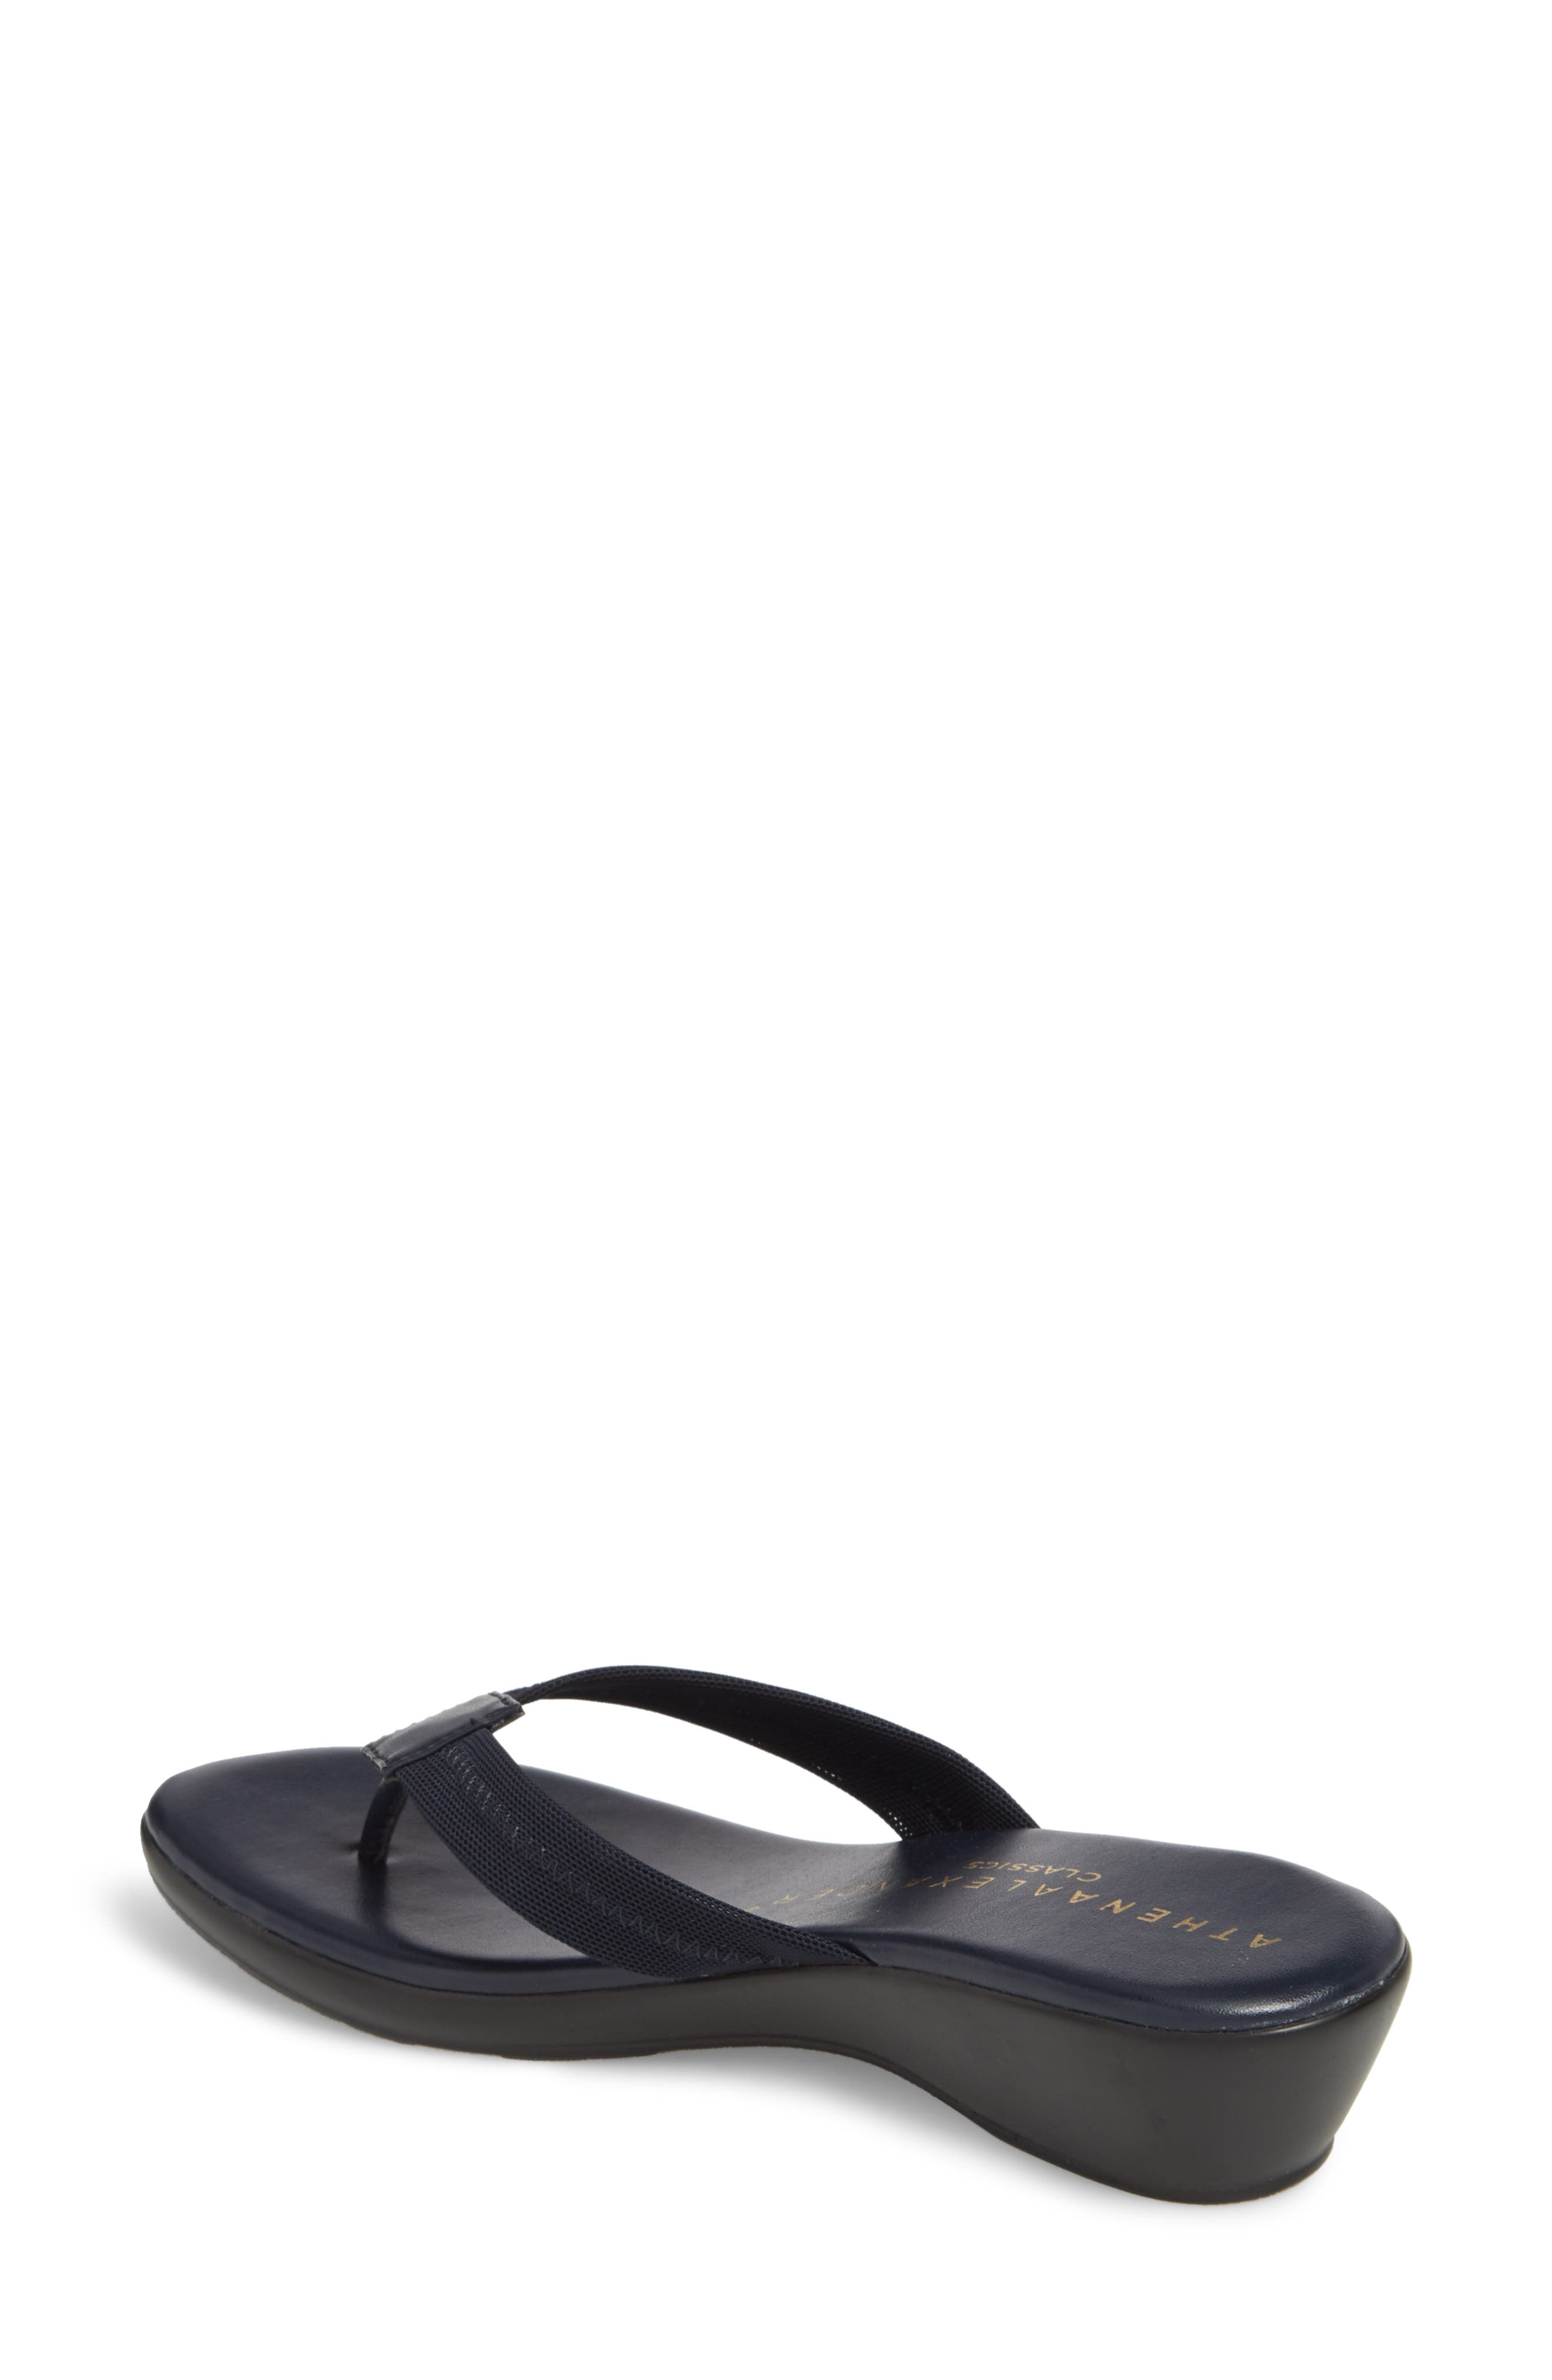 Ying Flip Flop,                             Alternate thumbnail 2, color,                             NAVY STRETCH FABRIC